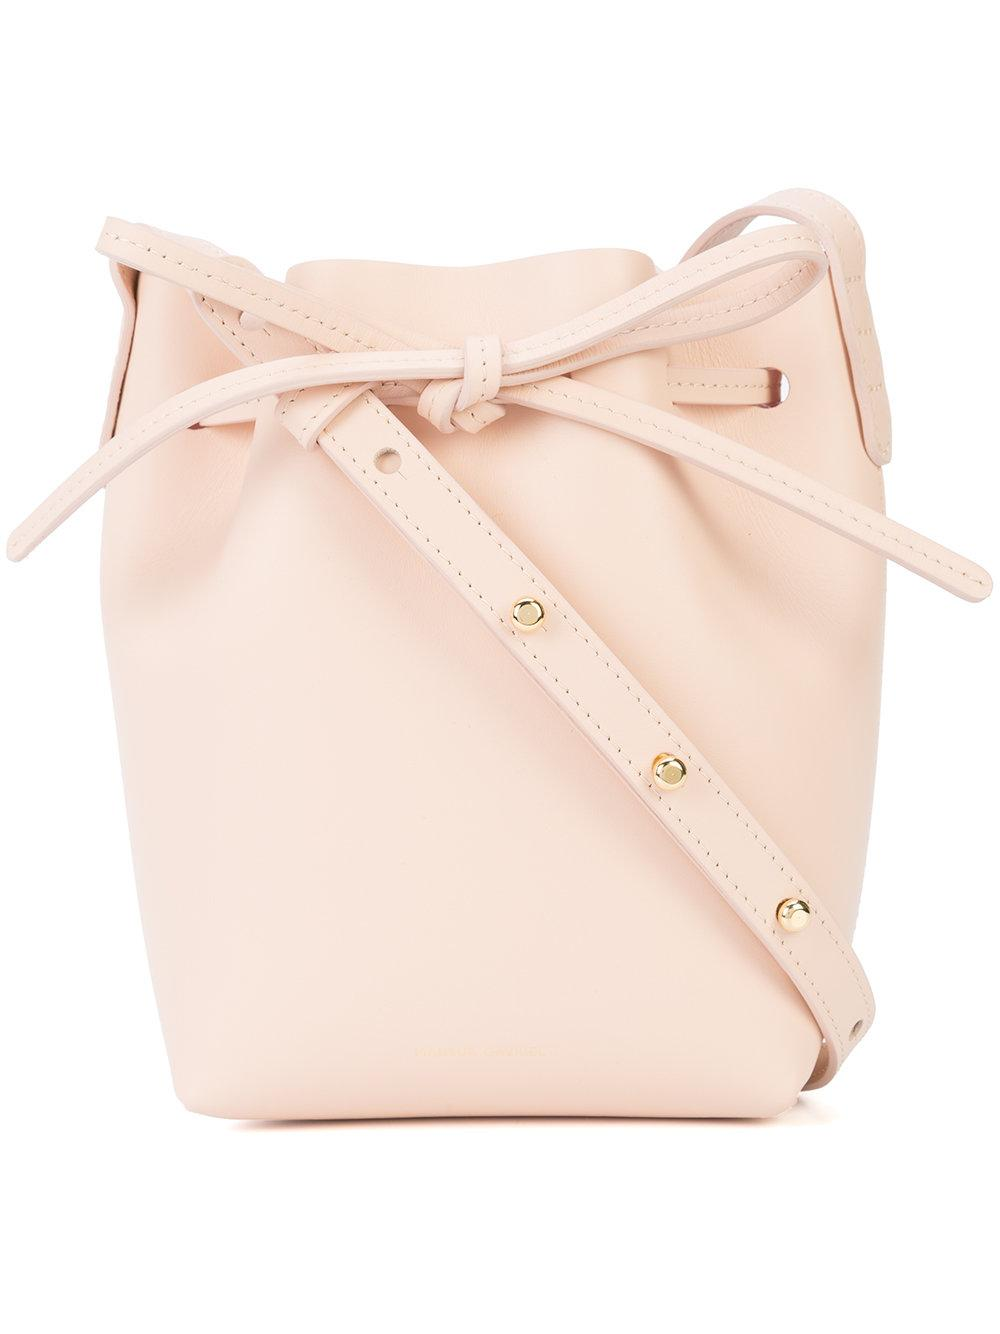 bdf314051f Light pink calf leather Mini Mini Bucket bag from MANSUR GAVRIEL featuring  an adjustable shoulder strap and a drawstring fastening.